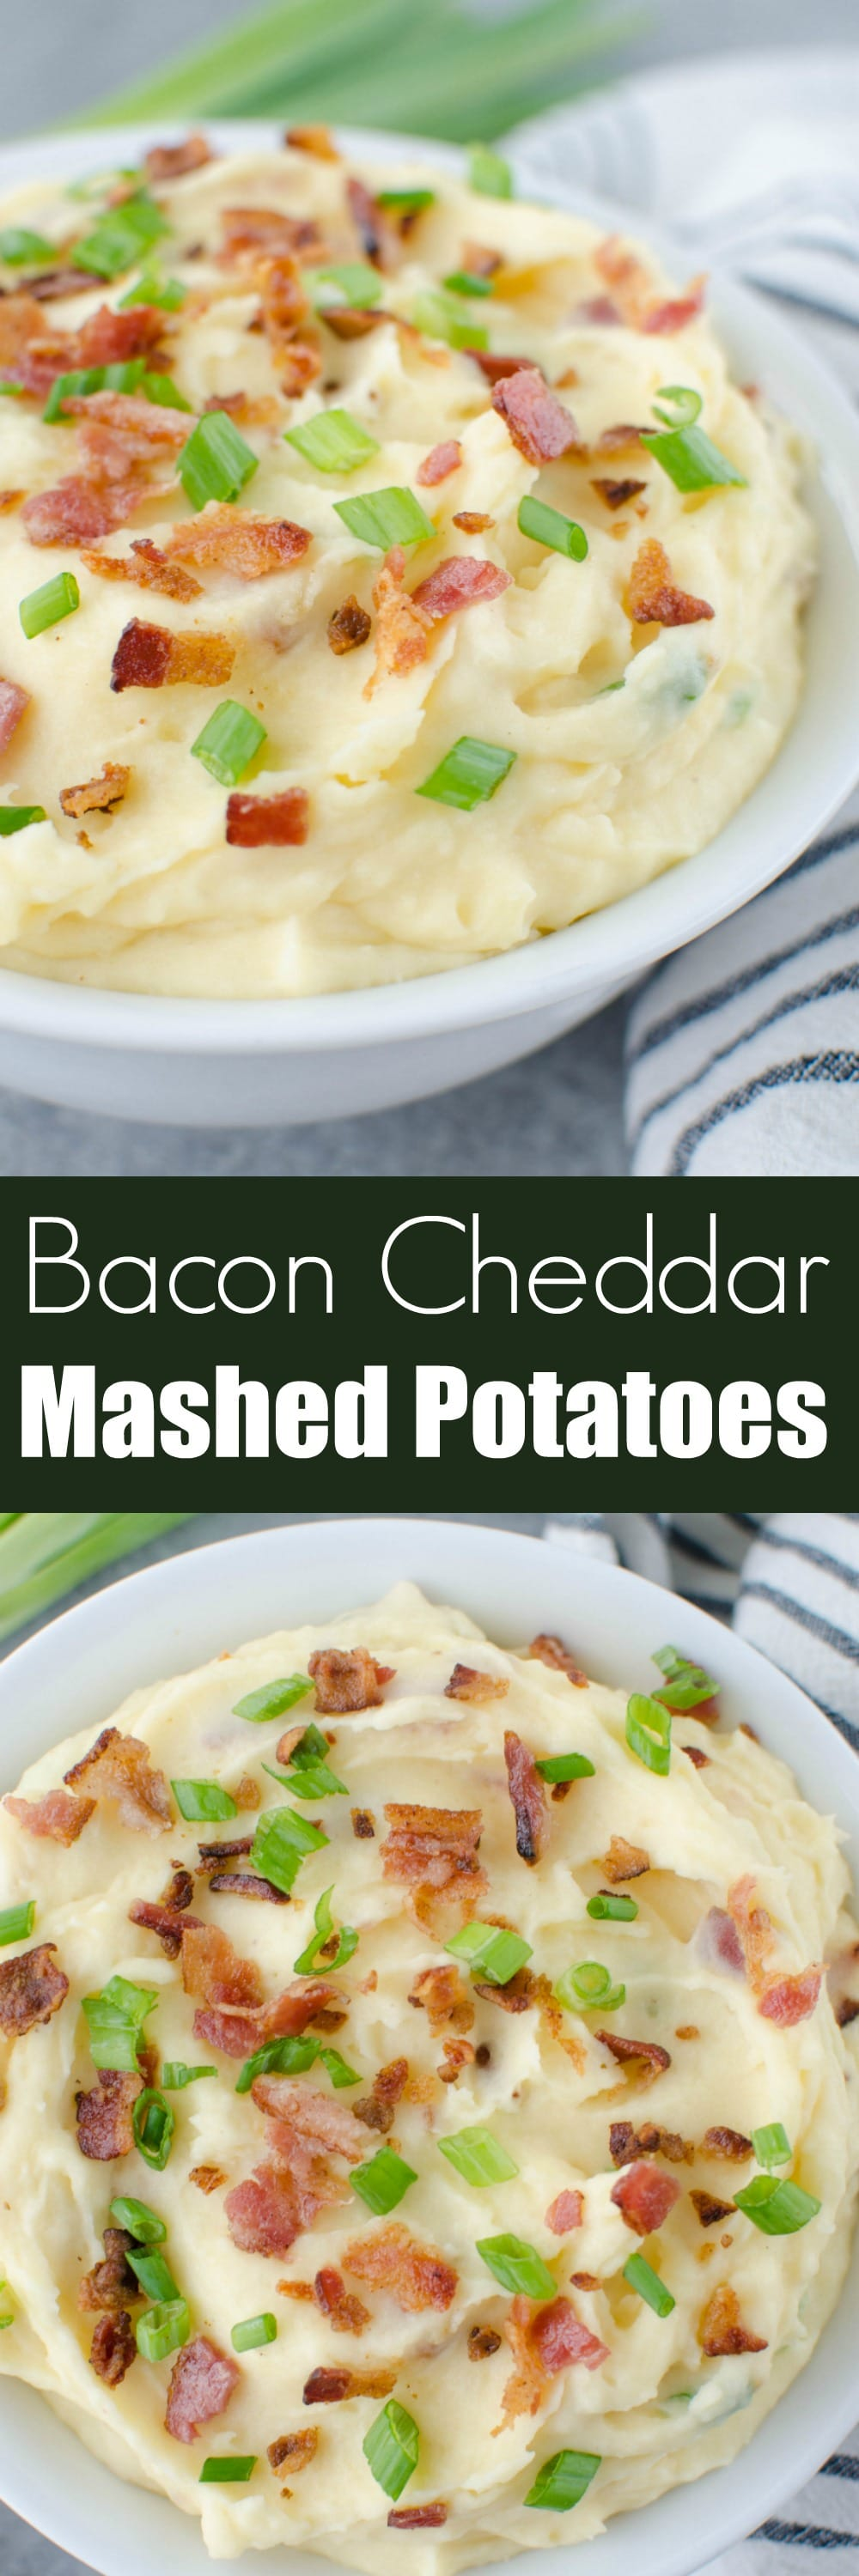 Cheddar and Bacon Mashed Potatoes - the perfect side dish for every meal! These potatoes are loaded with sour cream, cheddar cheese, bacon, and green onions!